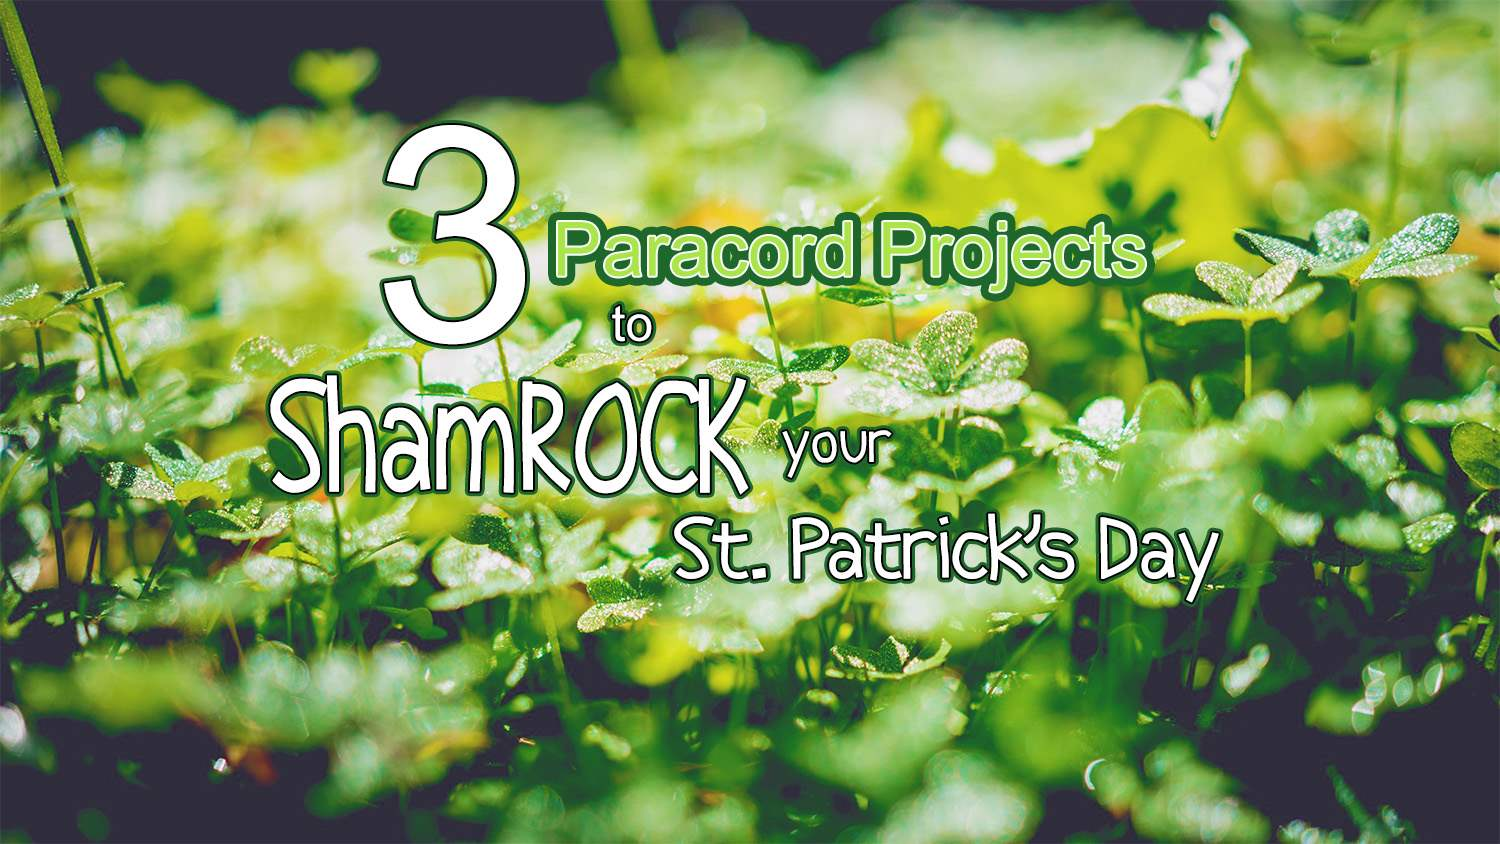 3 Paracord Projects to ShamROCK your St. Patricks Day